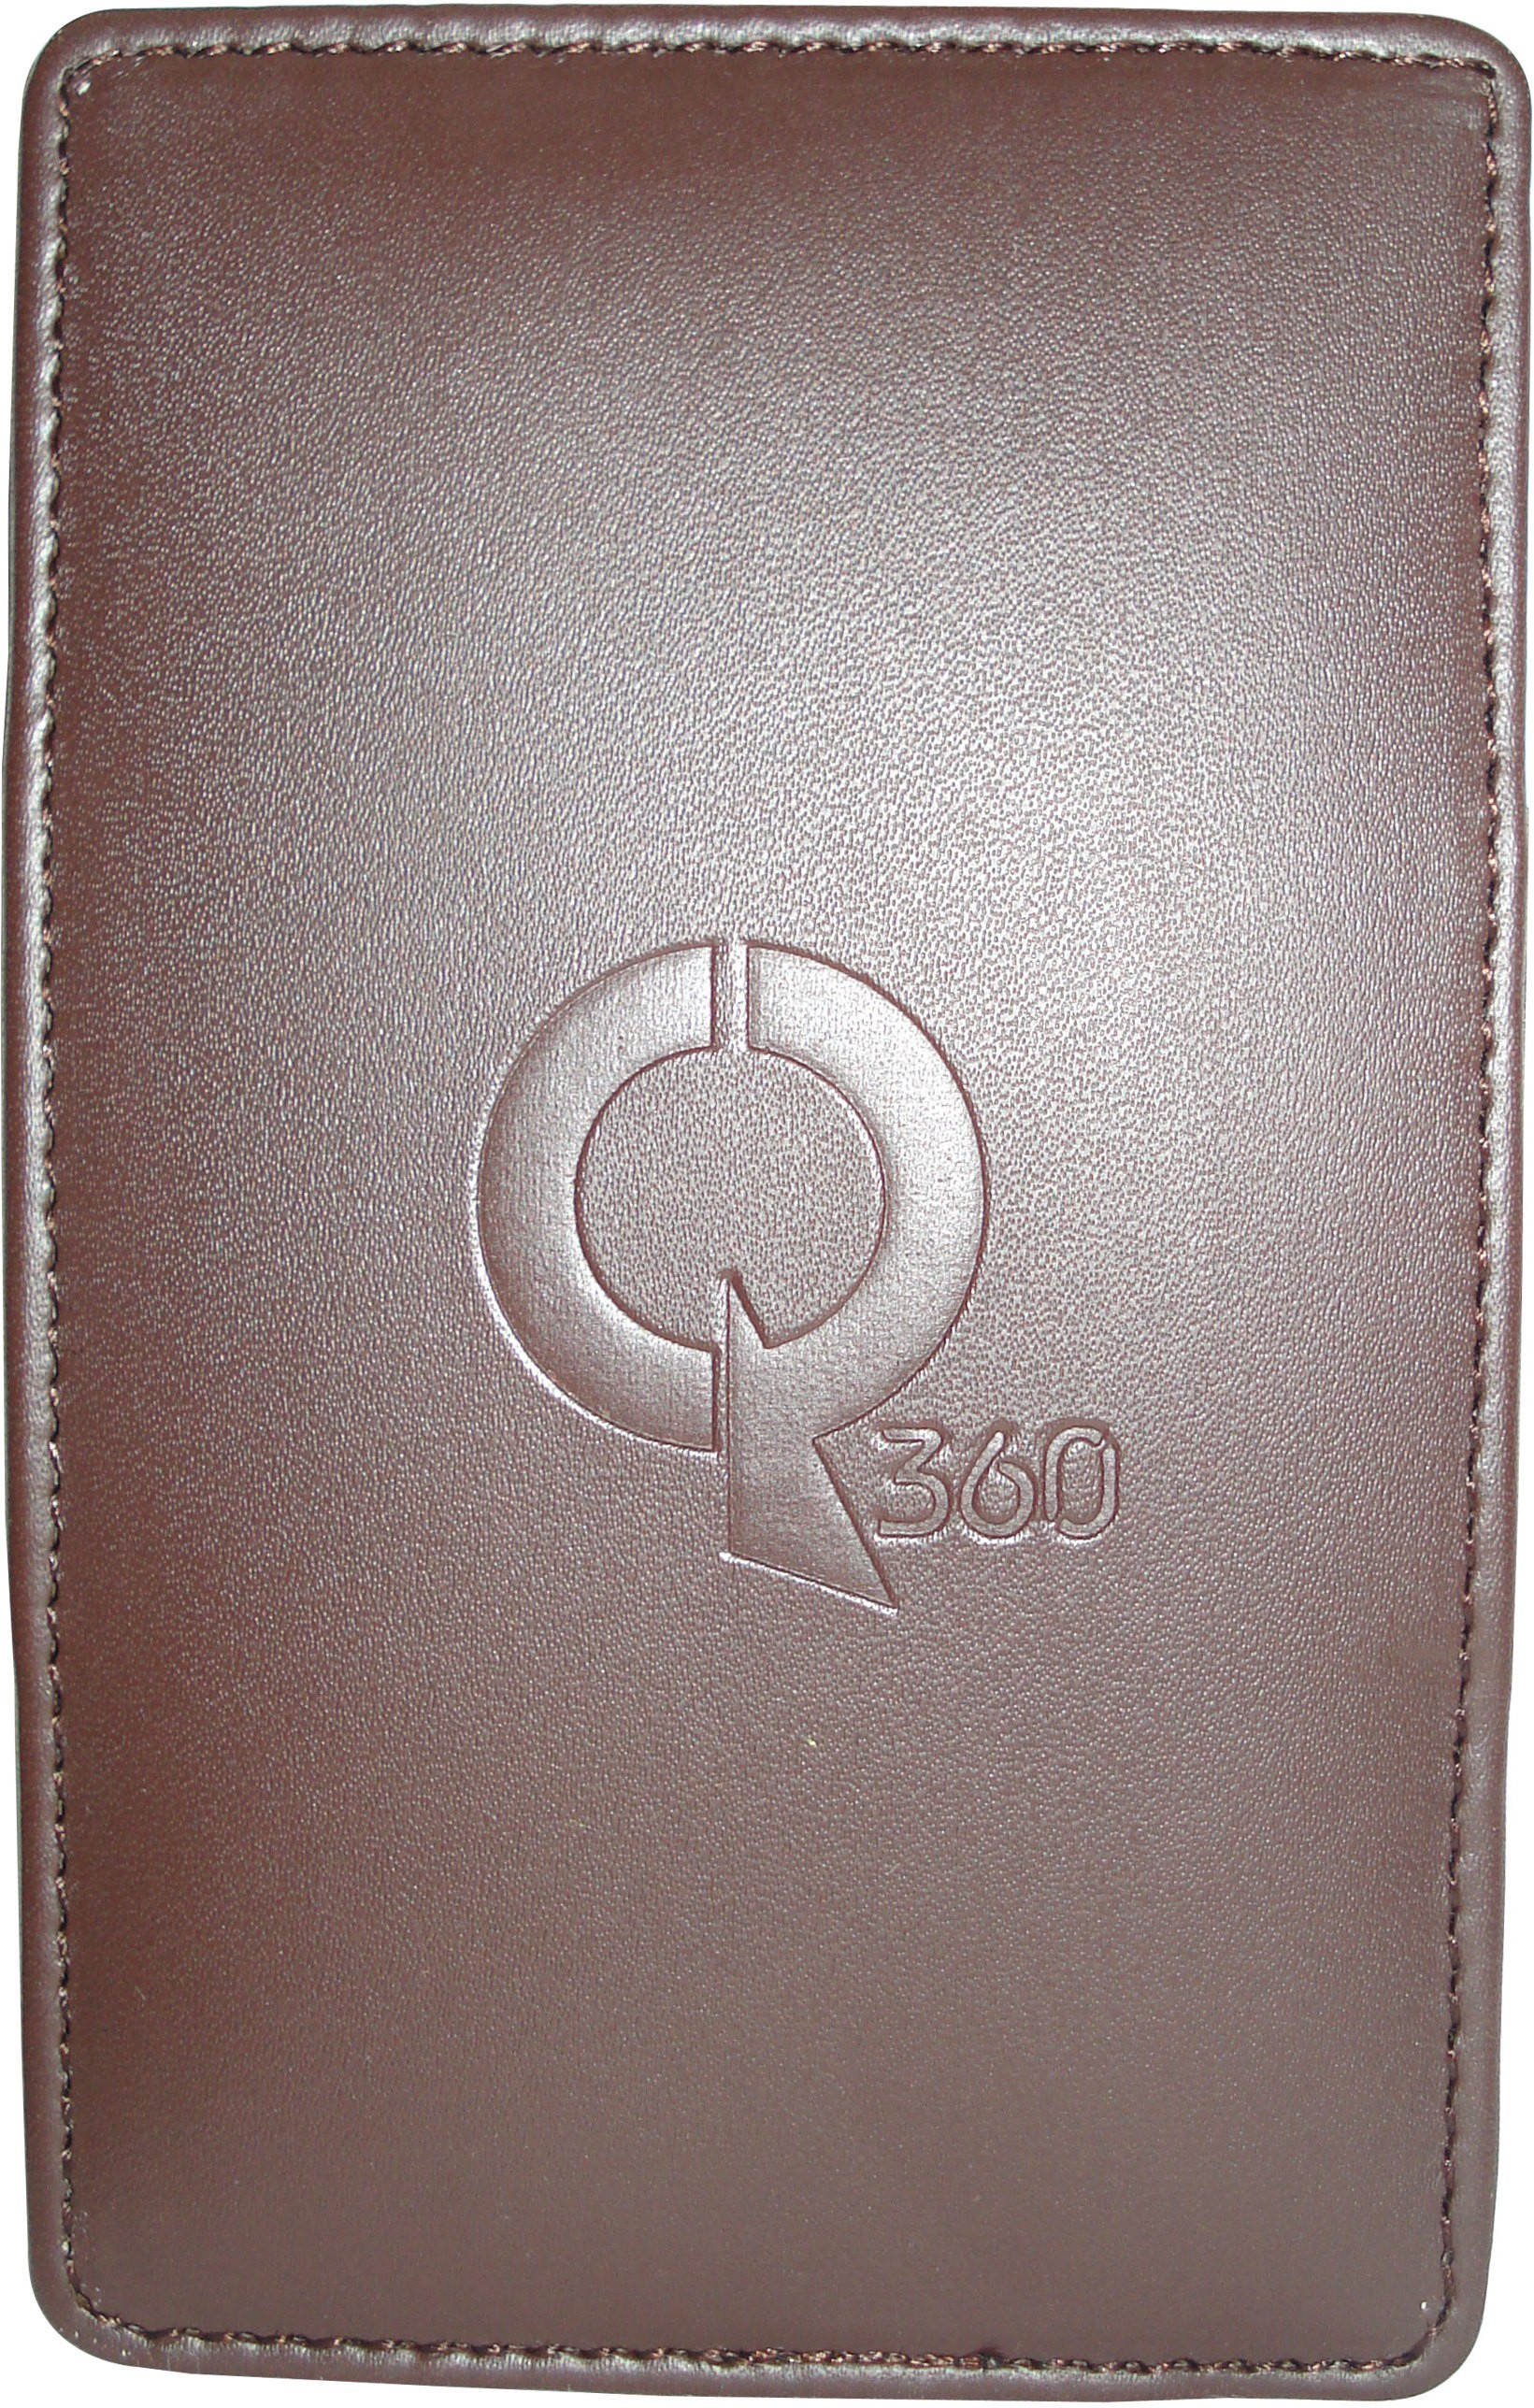 QP360 Dell-01-B 2.5 inch External Hard Drive Cover